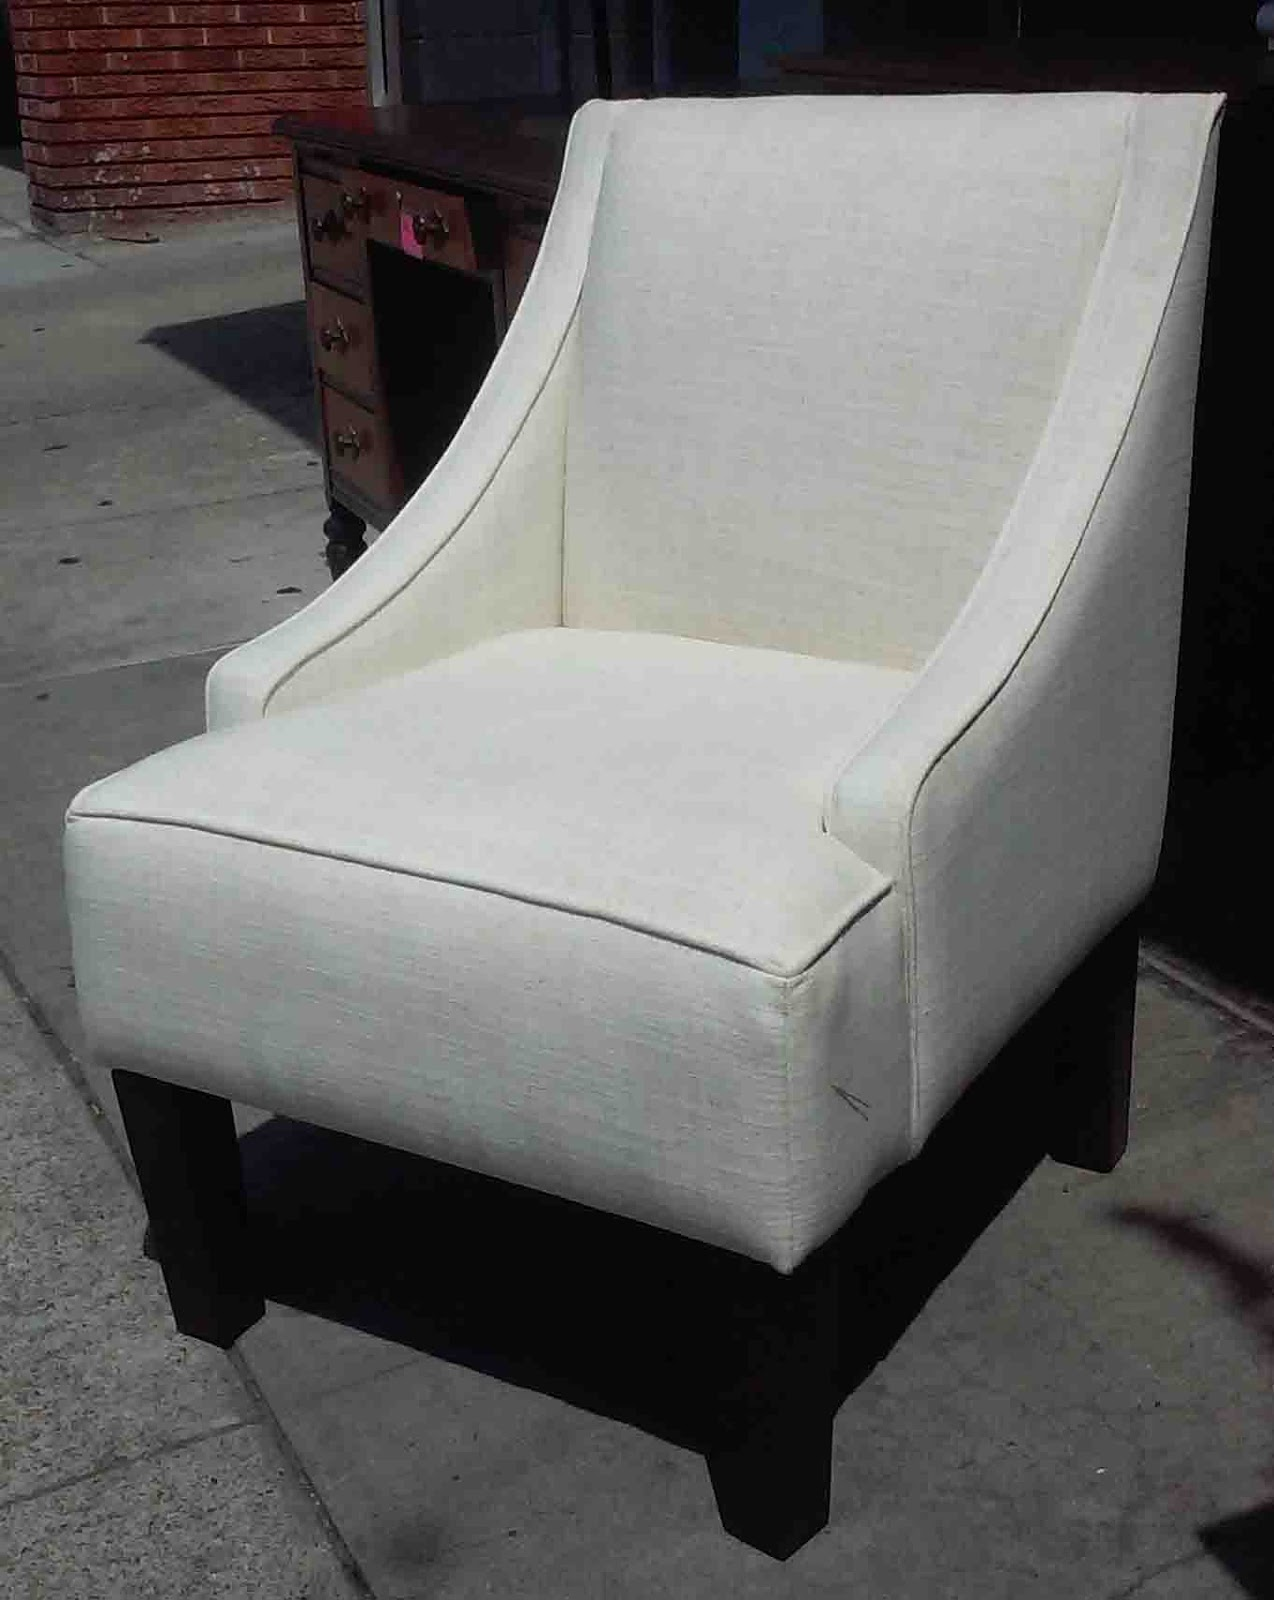 white linen chair target outdoor folding lawn chairs uhuru furniture and collectibles sold 80